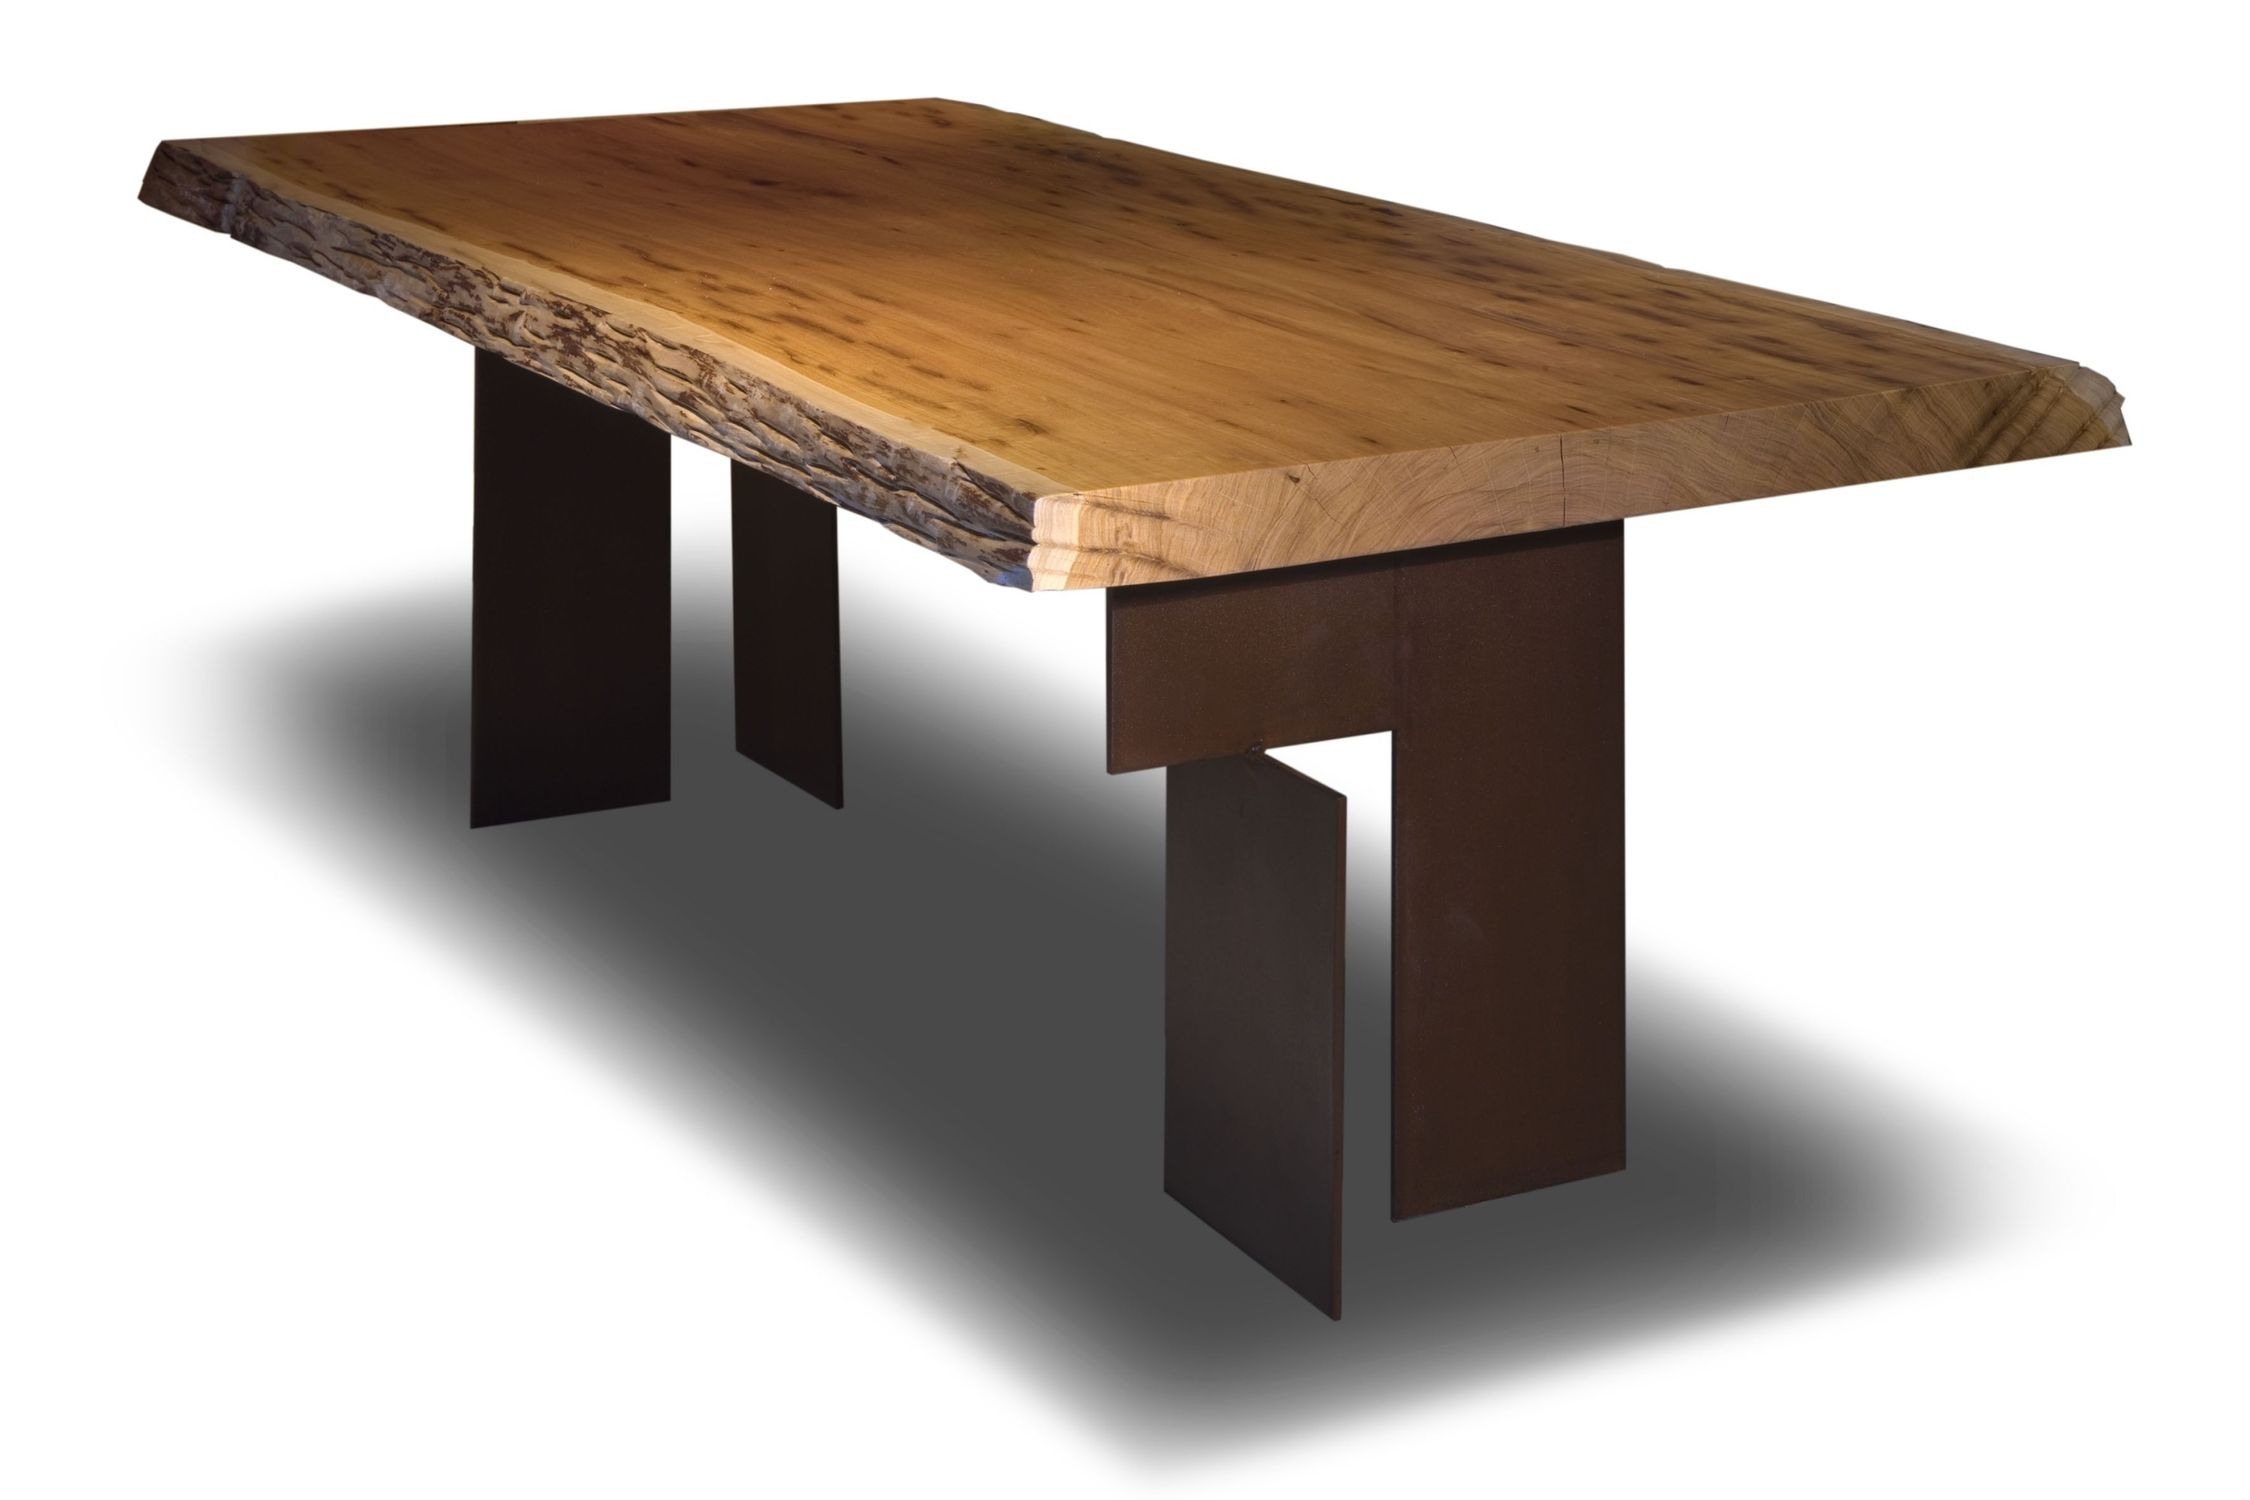 Contemporary Table Wooden Rectangular In Reclaimed Material - Outdoor wood rectangular dining table